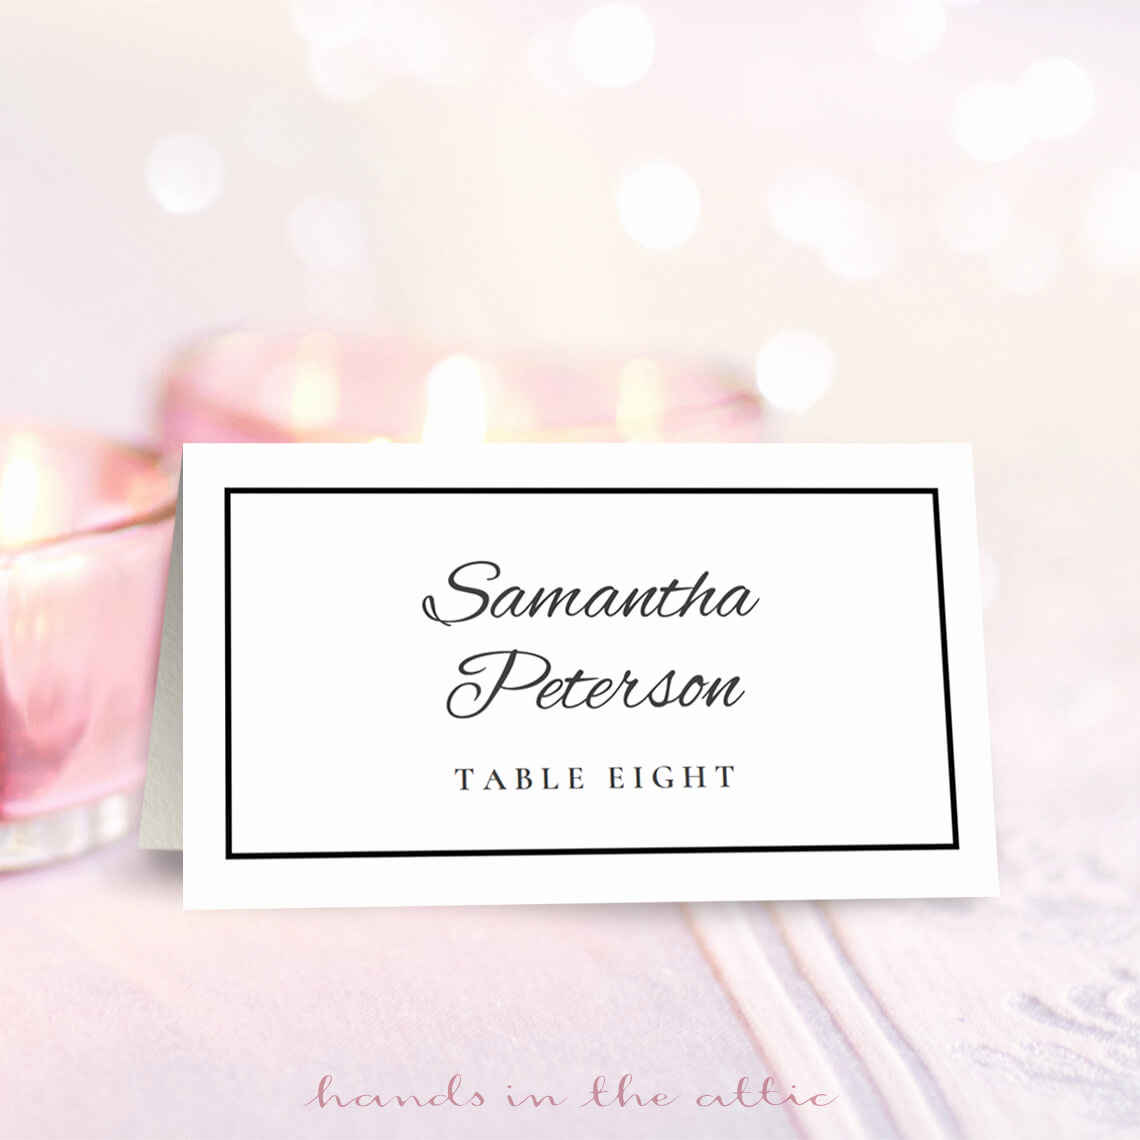 Free Wedding Place Card Template Fresh Wedding Place Card Template Free Download